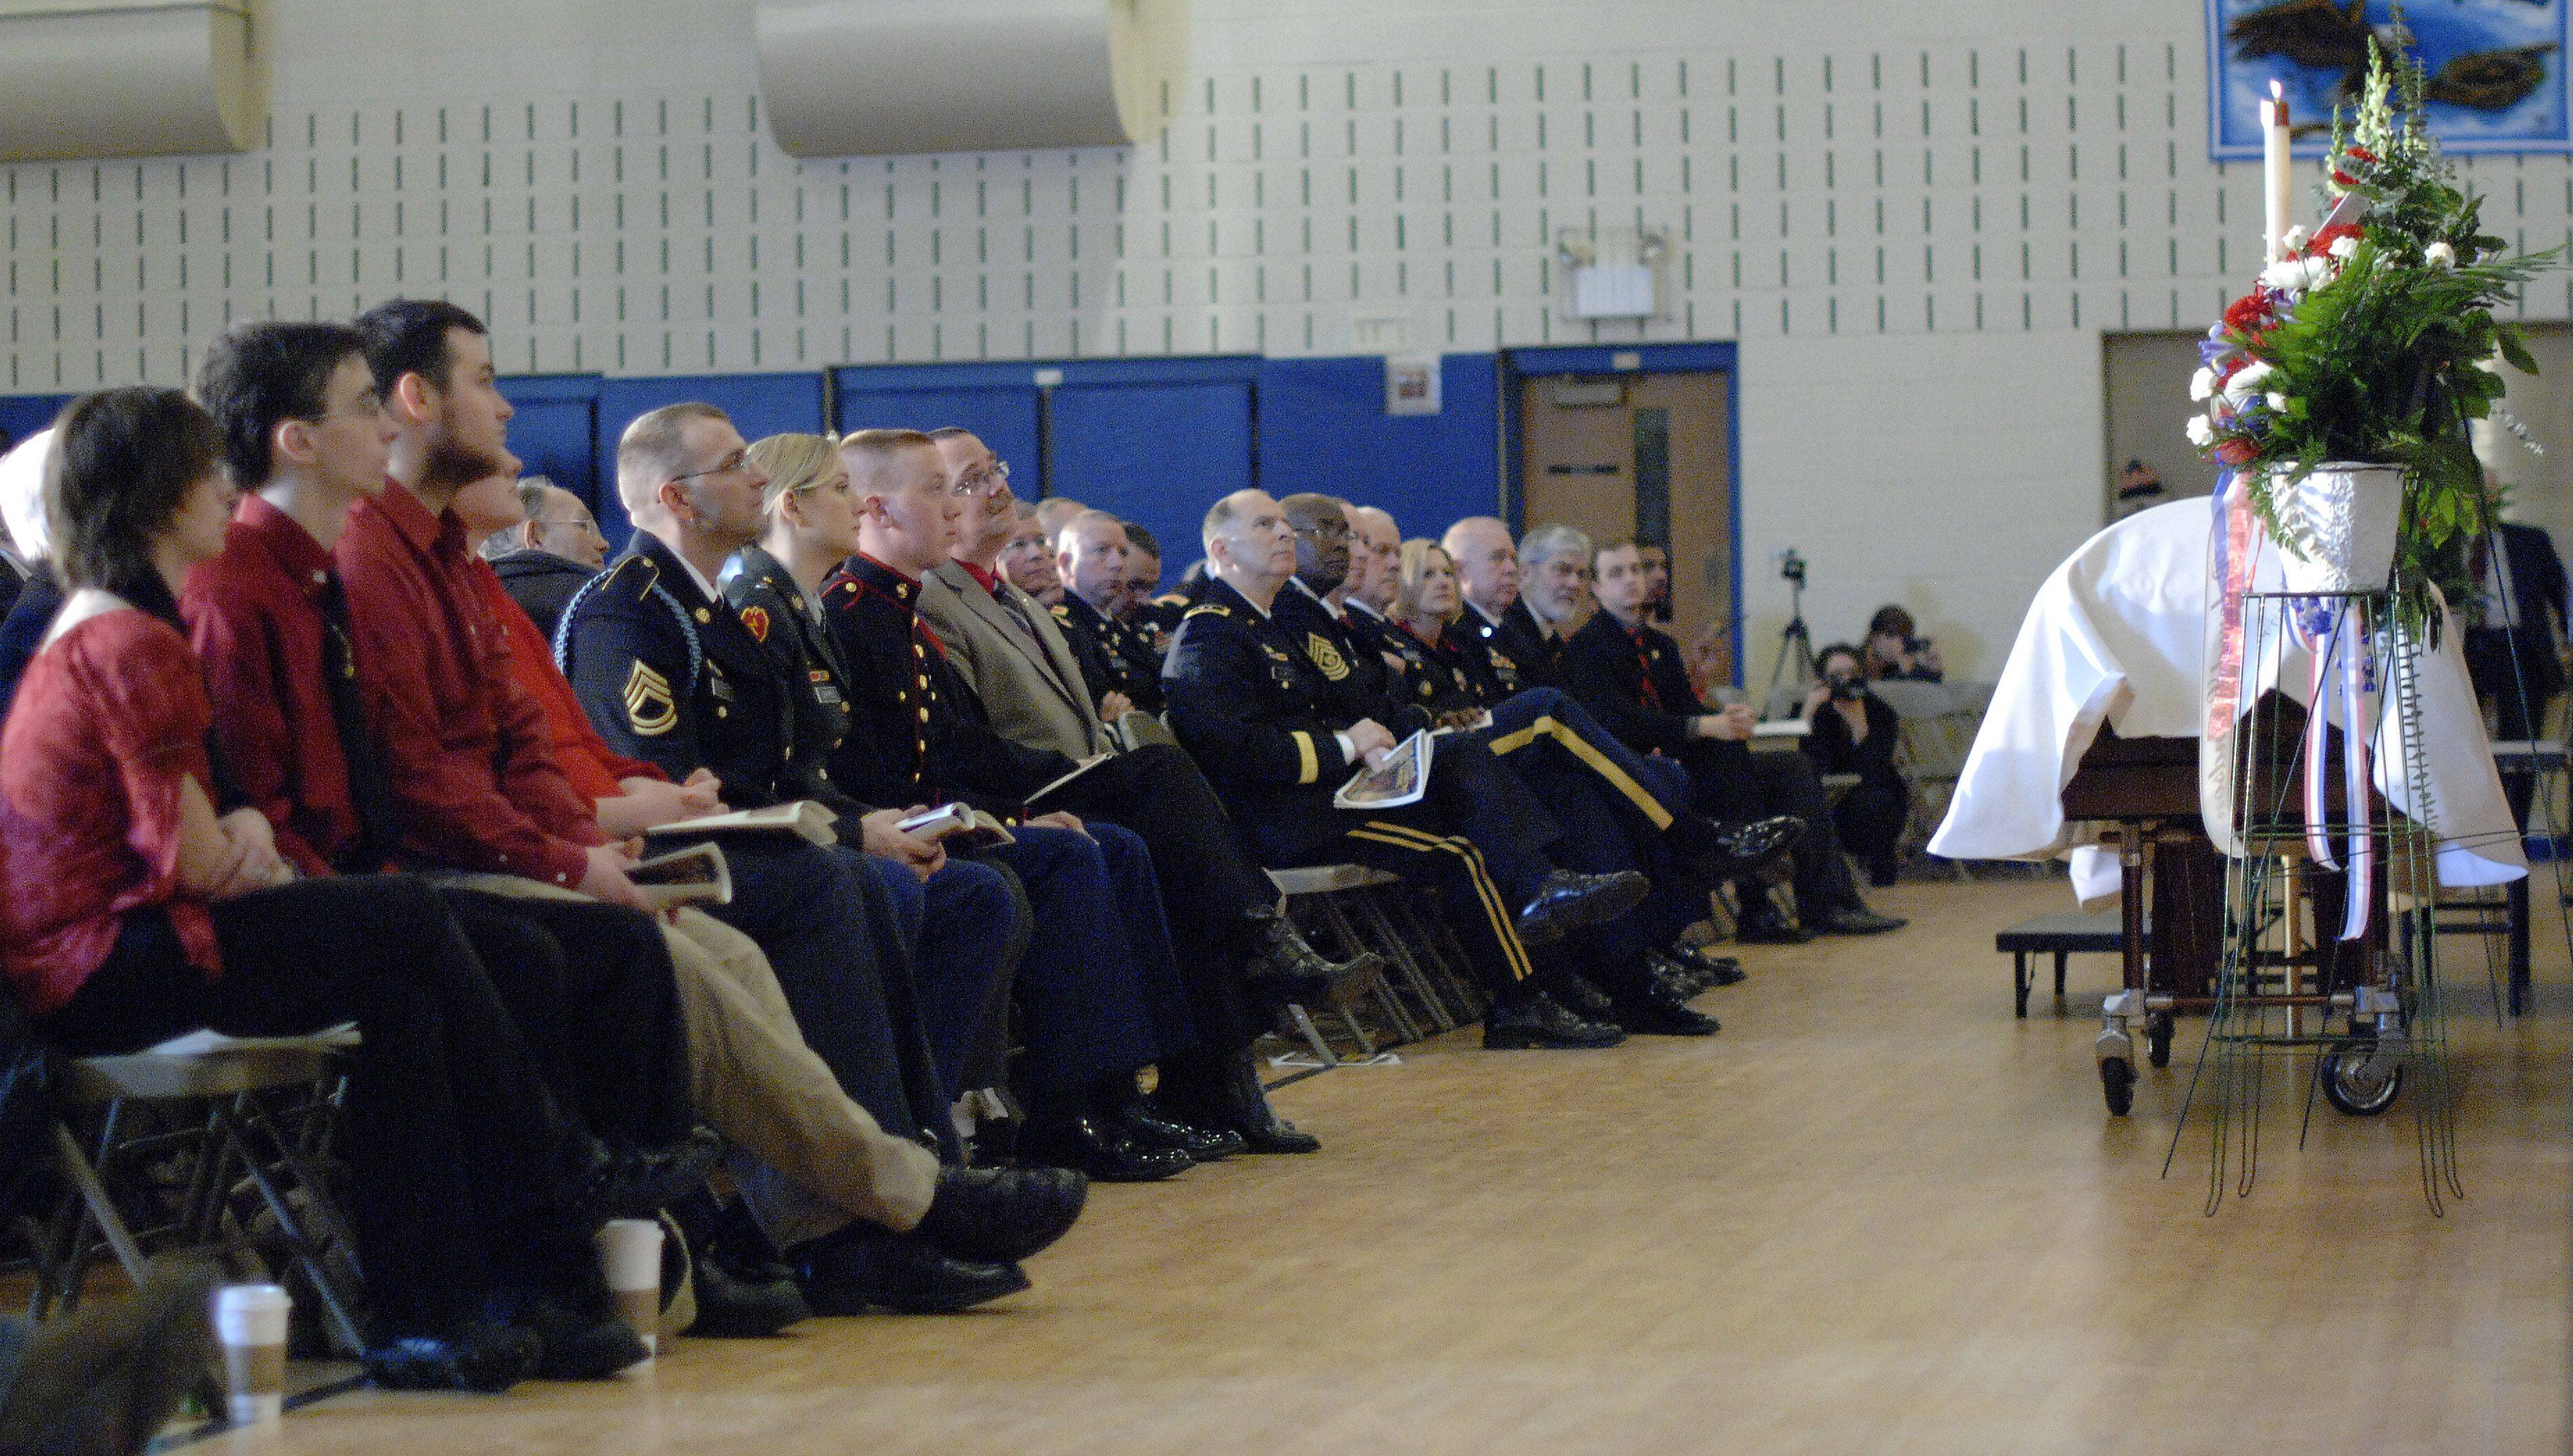 The casket of Spc. Christopher A. Patterson sits at the front of the auditorium at Immanuel Lutheran Church in Batavia on Saturday, January 21.